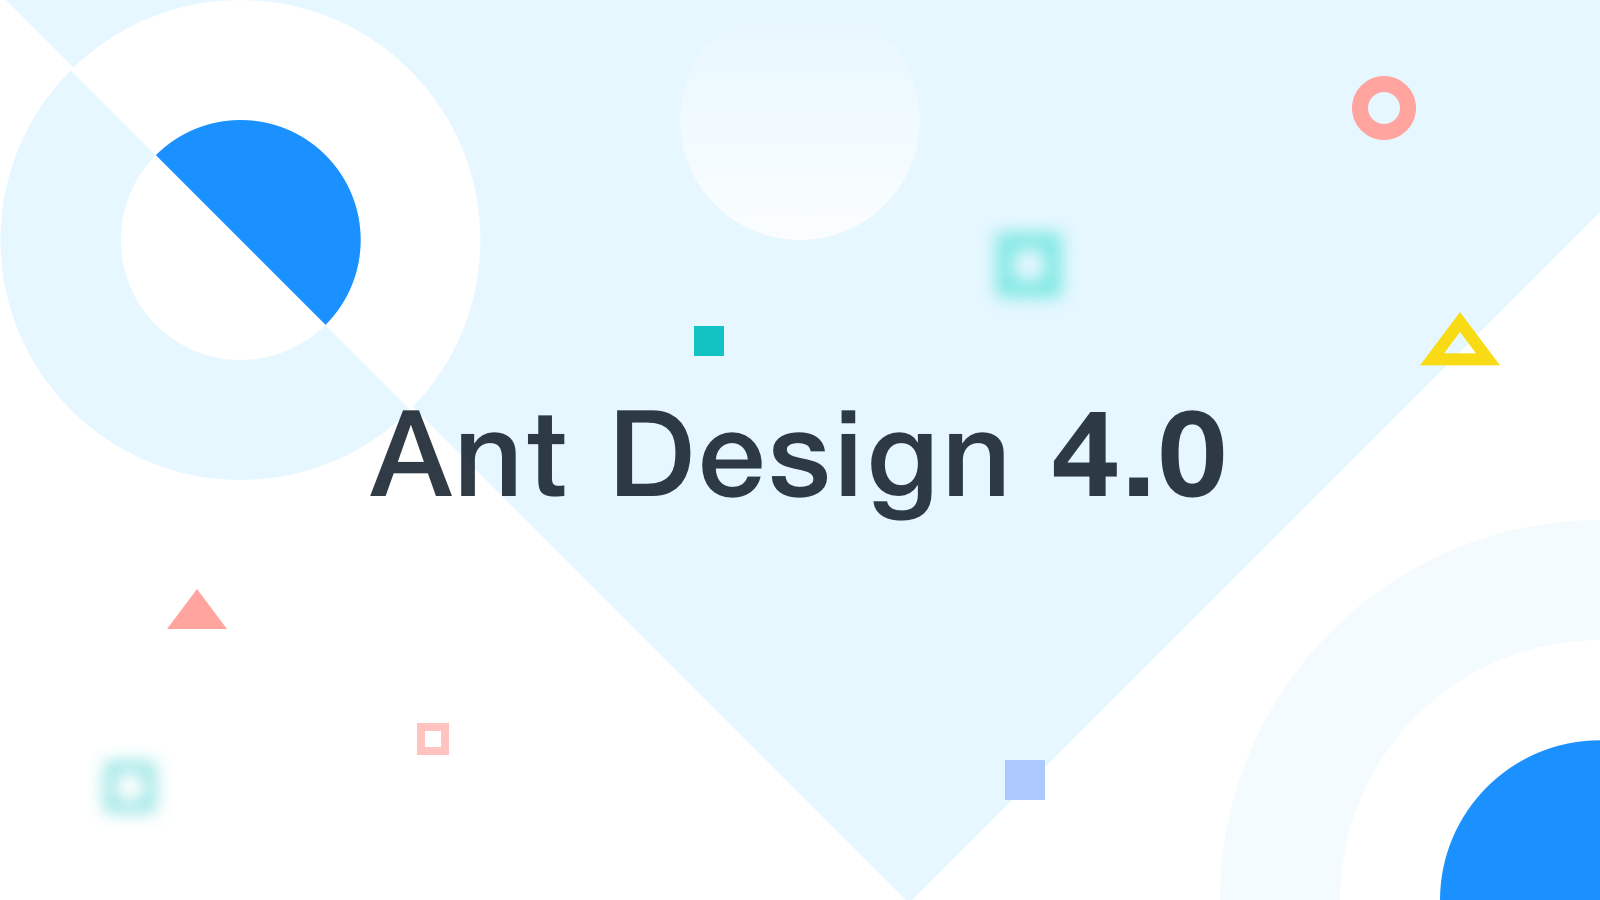 Ant Design 4 0 is in progress! - Ant Design - Medium